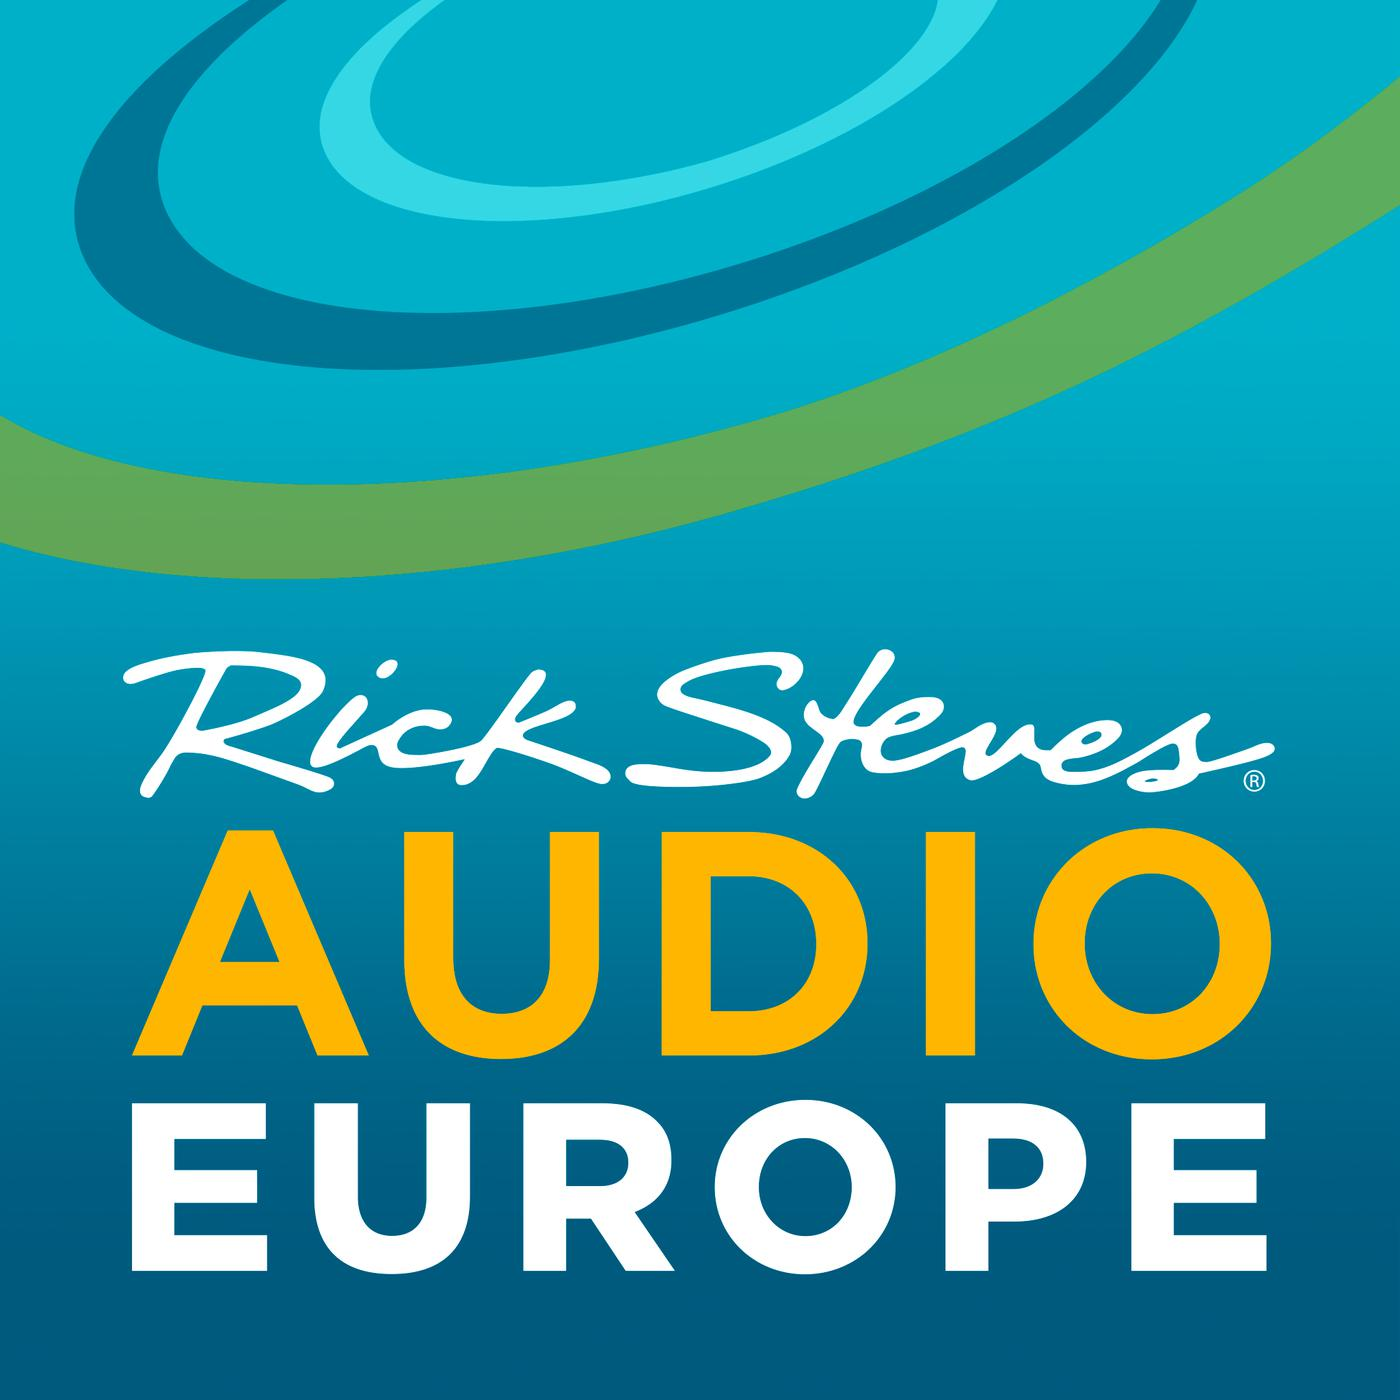 Robert Wright, Rick Steves, audio Europe, radio interview